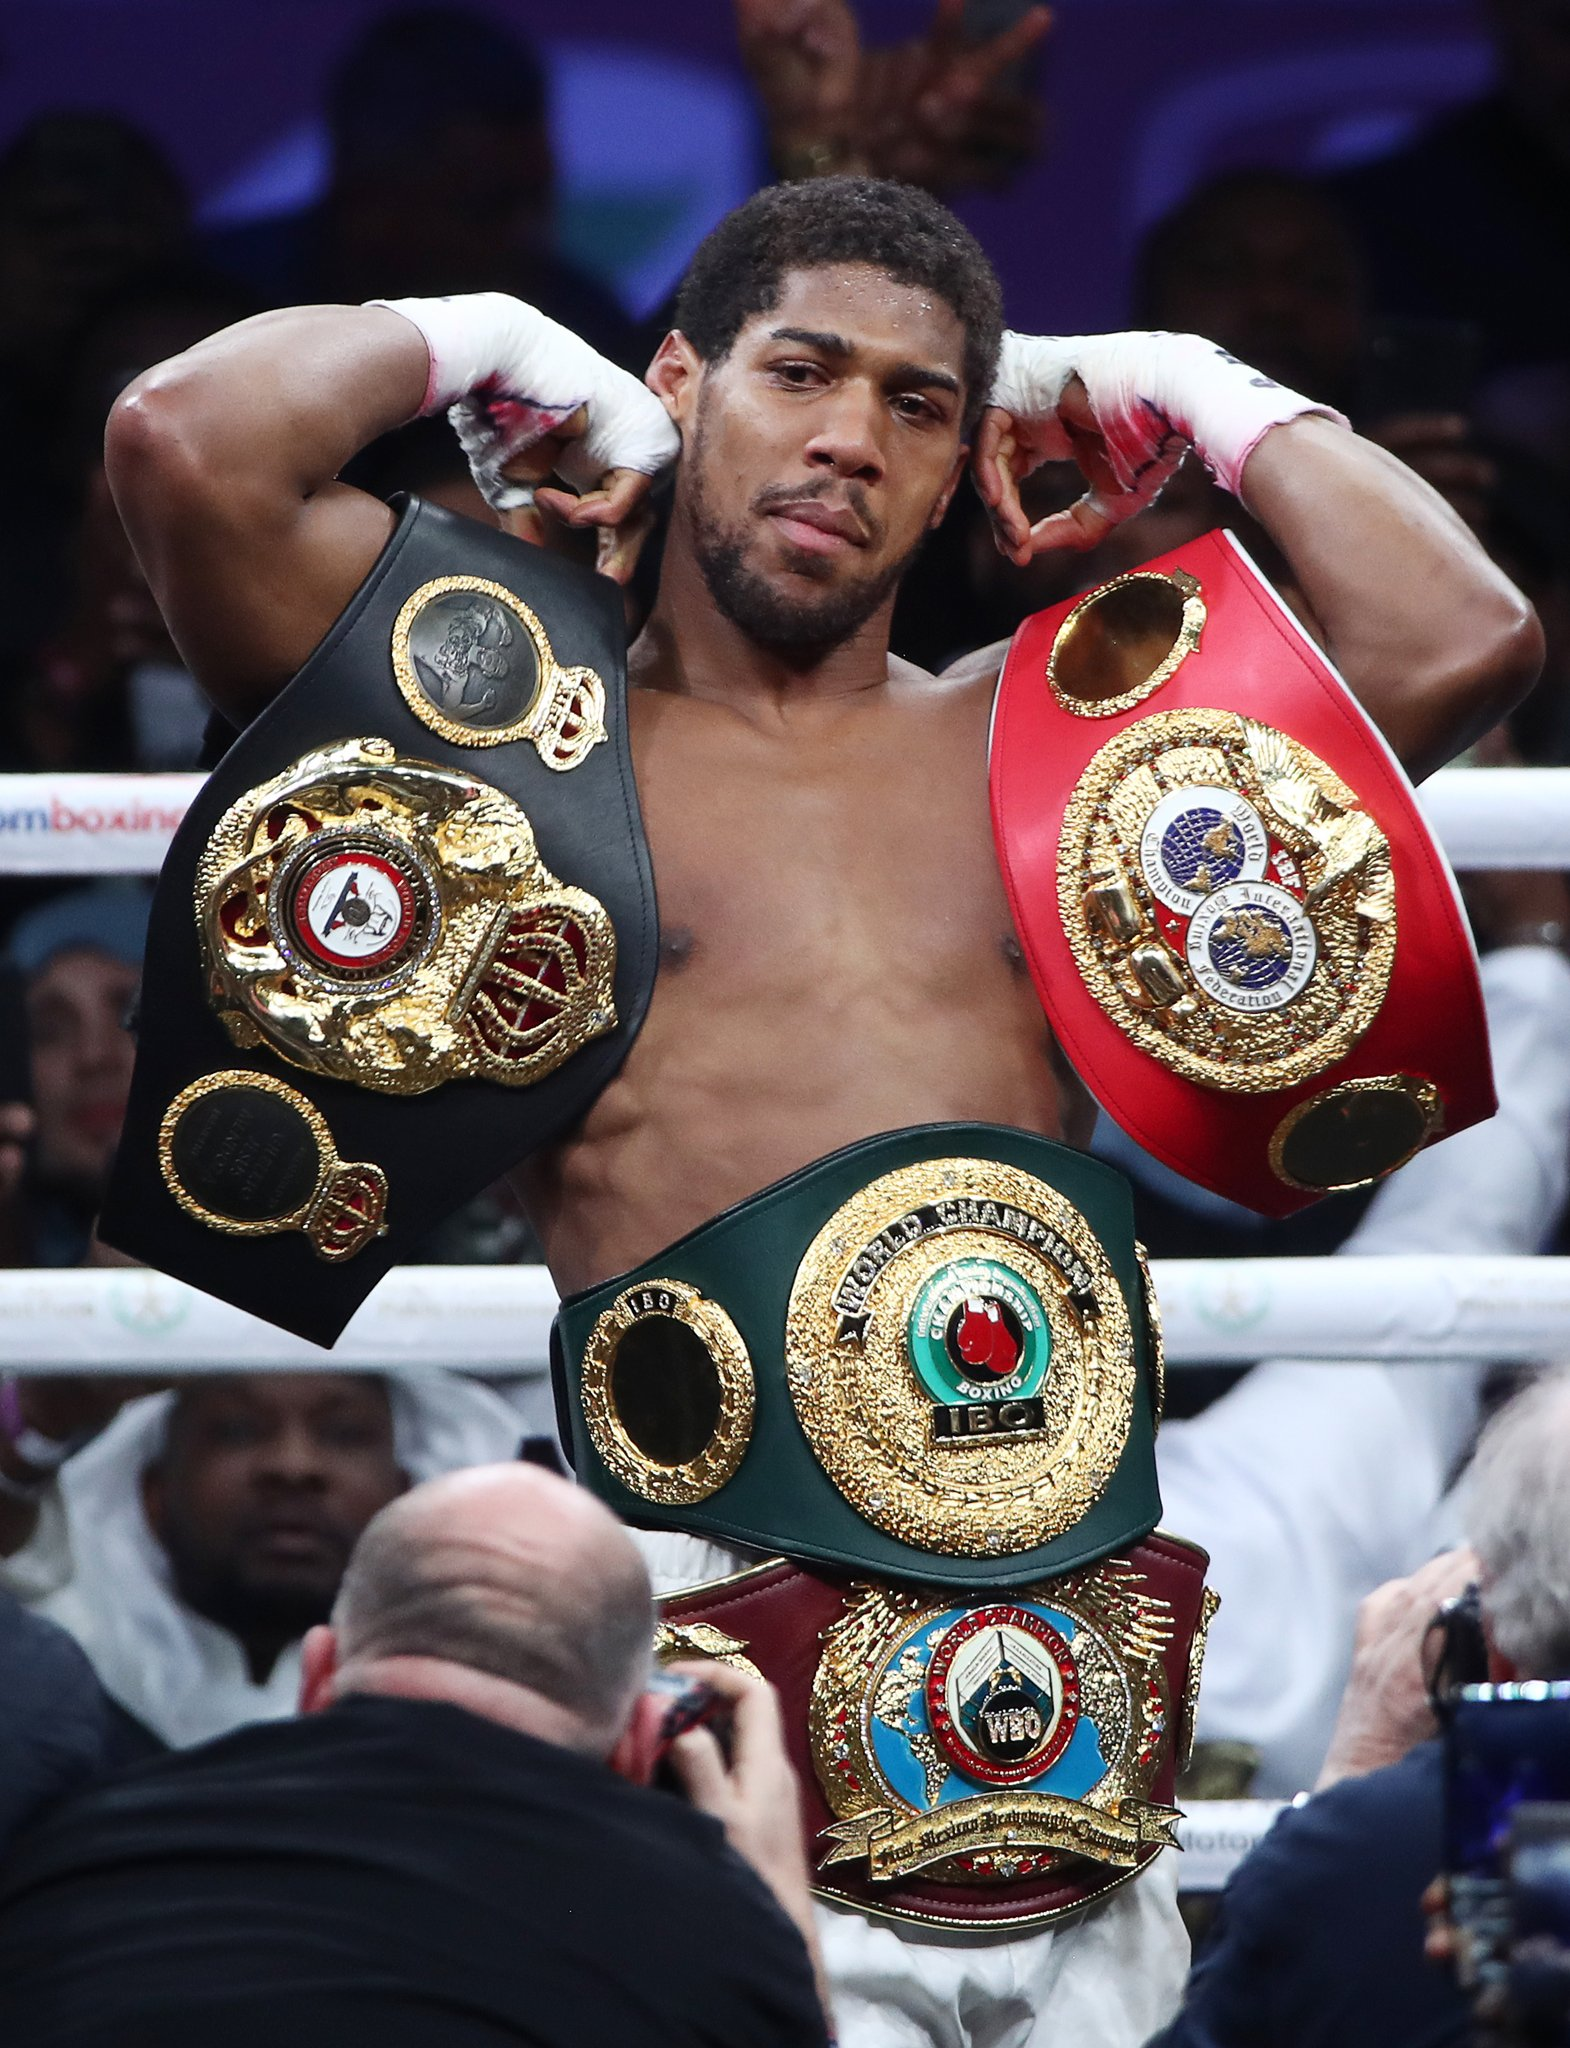 Joshua Calls Out Wilder, Ready For Unification Fight